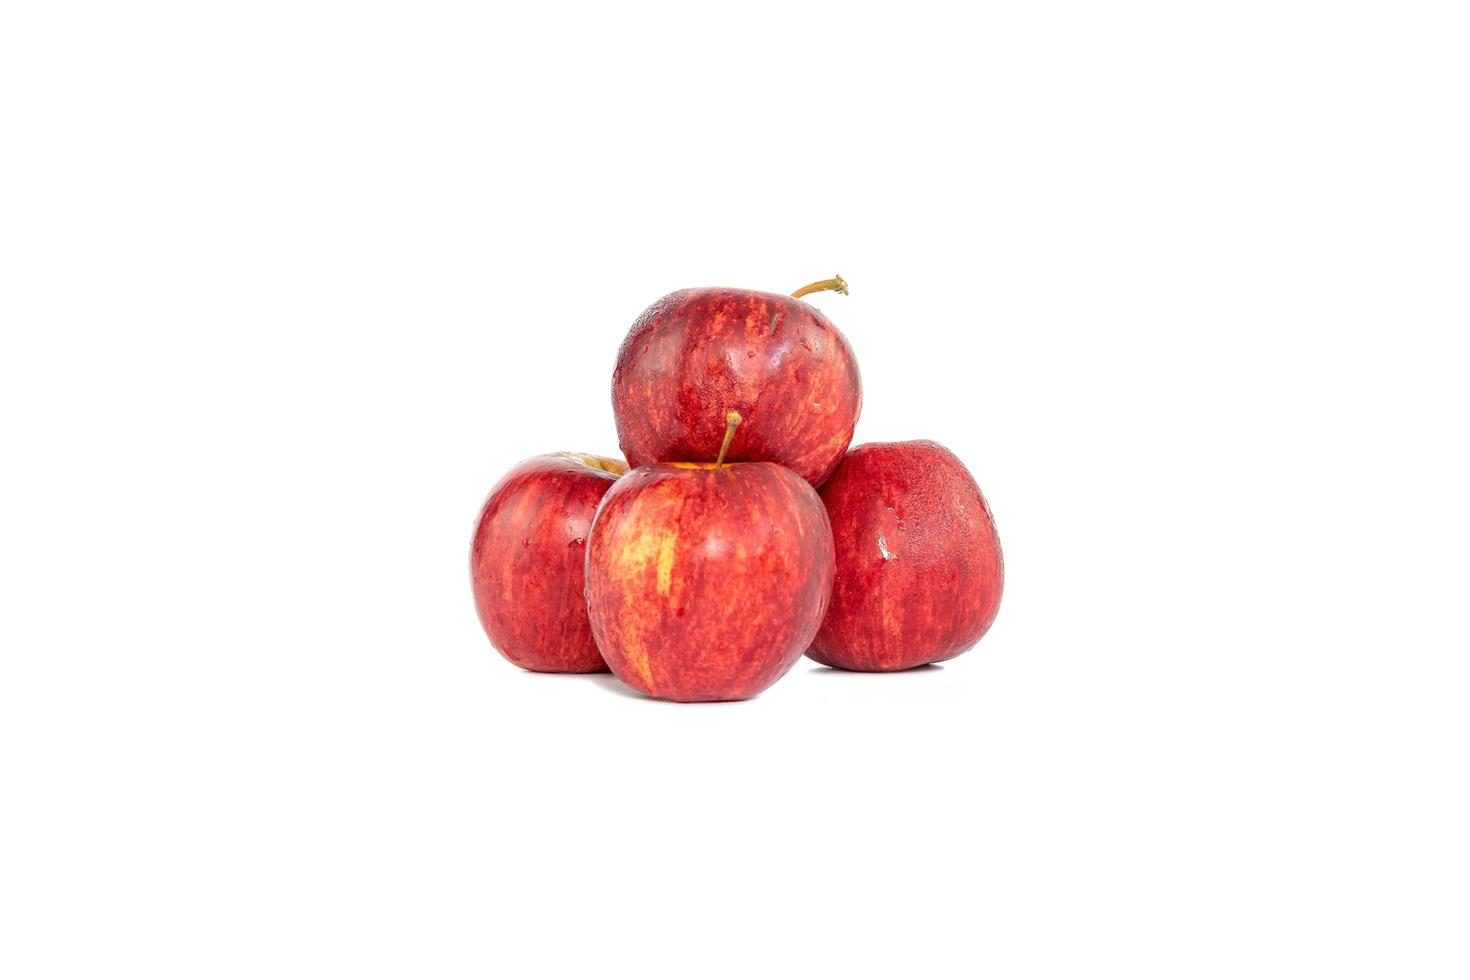 Group of red apples isolated on white background photo